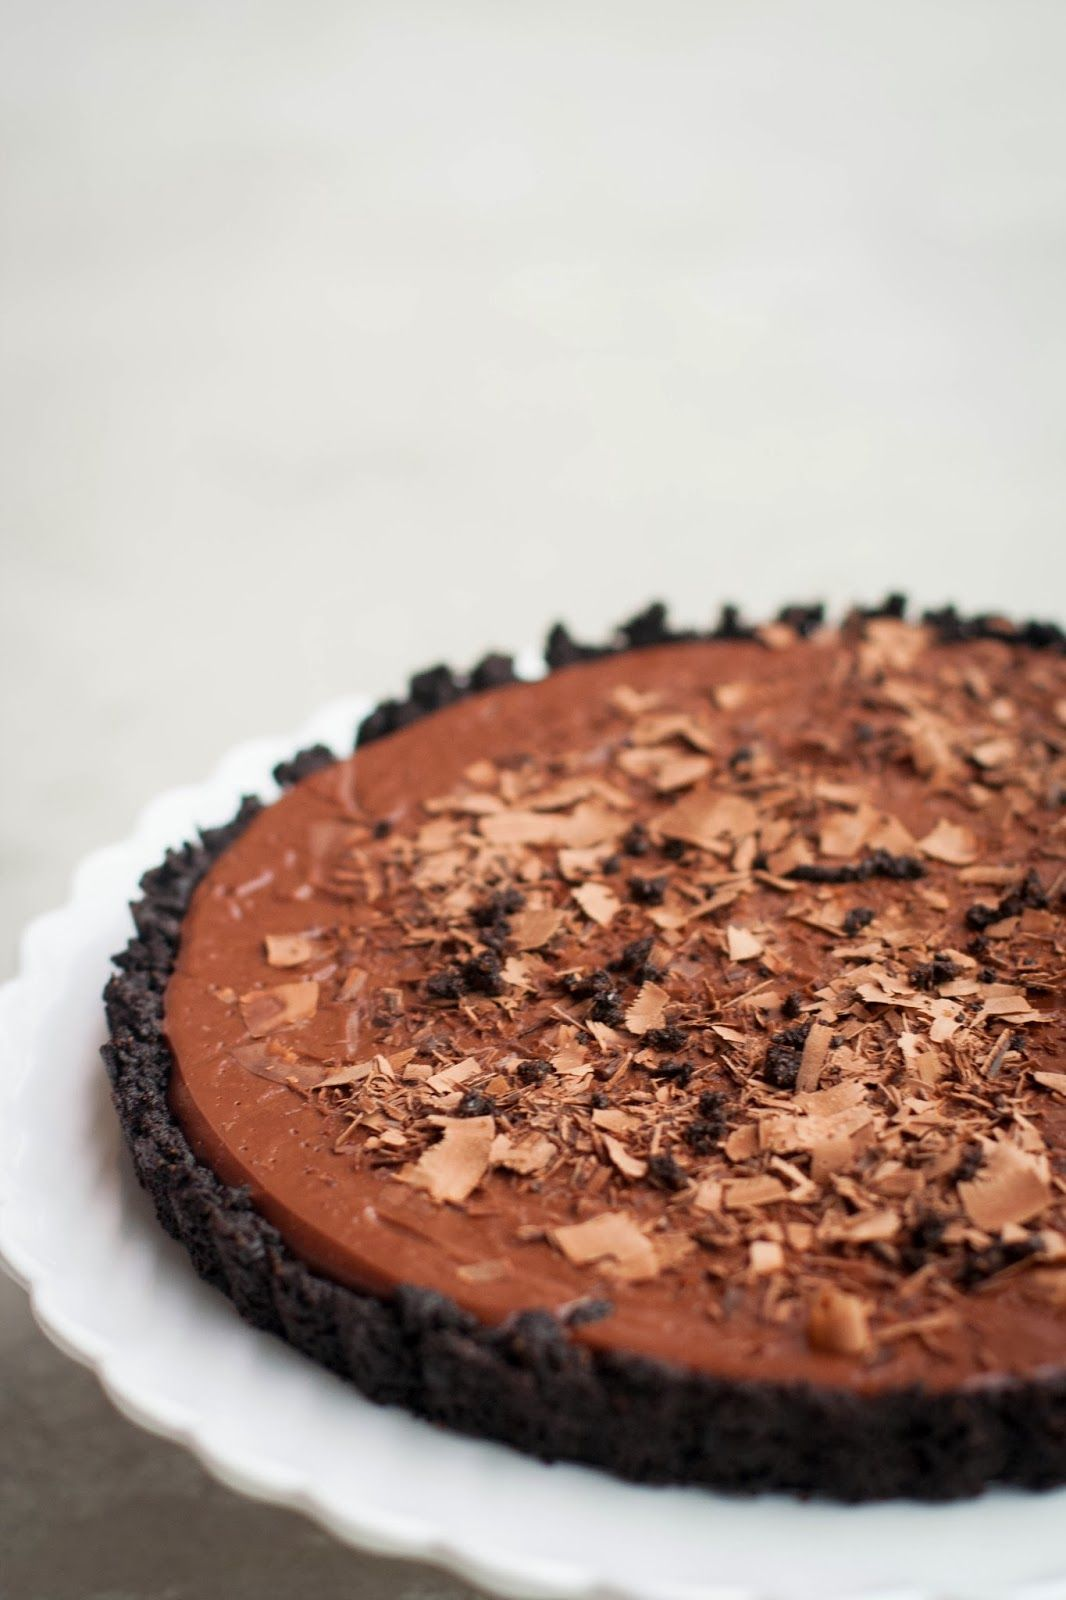 #food #recipes #chocolate tart #sweets #desserts - Chocolate Stout Tart with an Oreo Cookie Crust